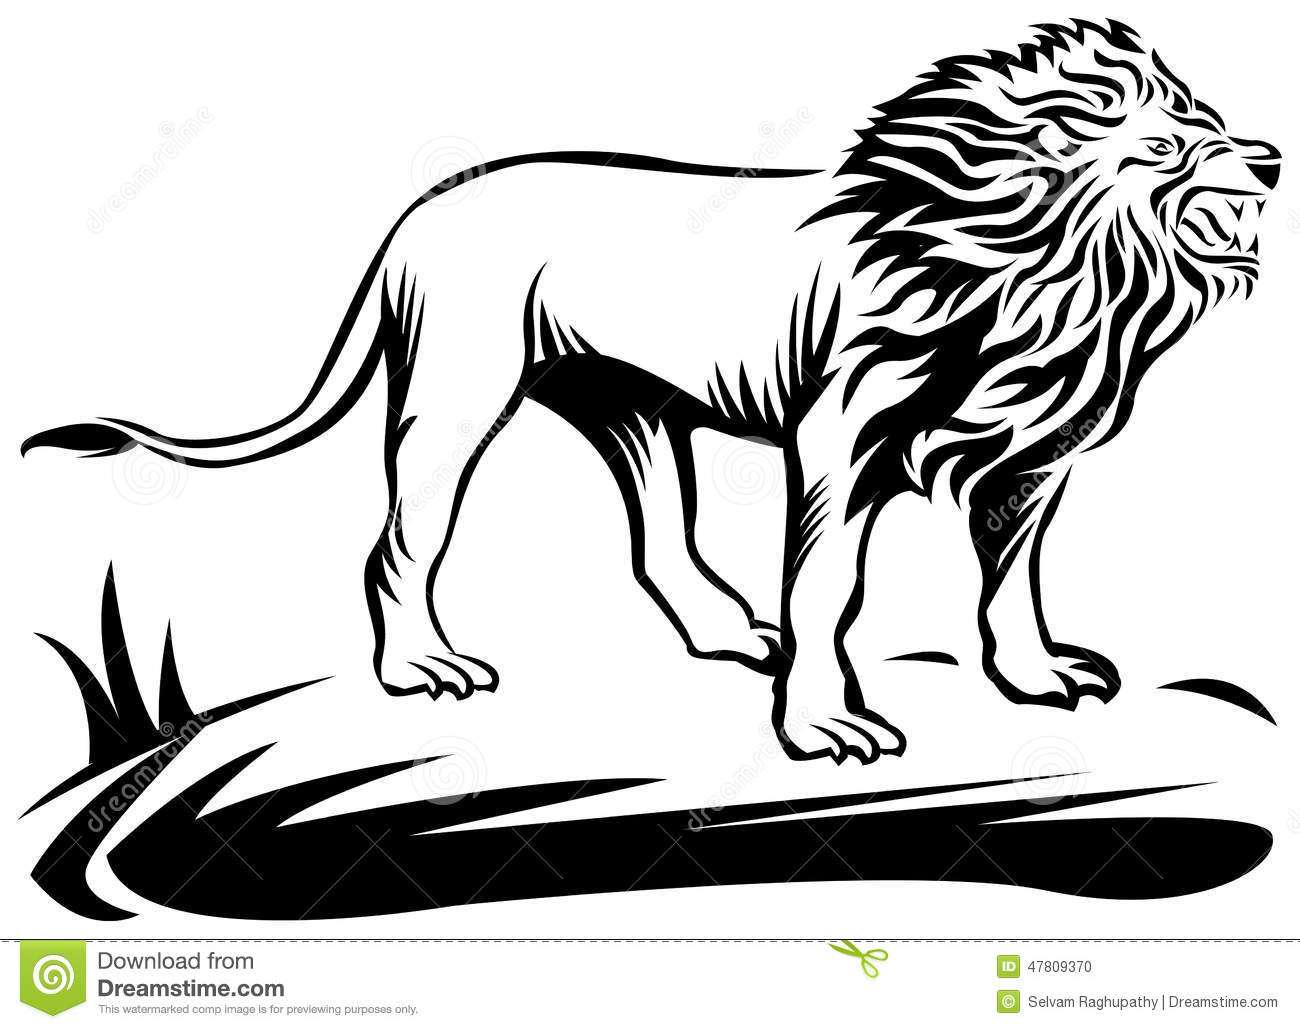 Roaring Lion Clip Art Black And White Roaring Cartoons Illustrations And Vector Stock Images